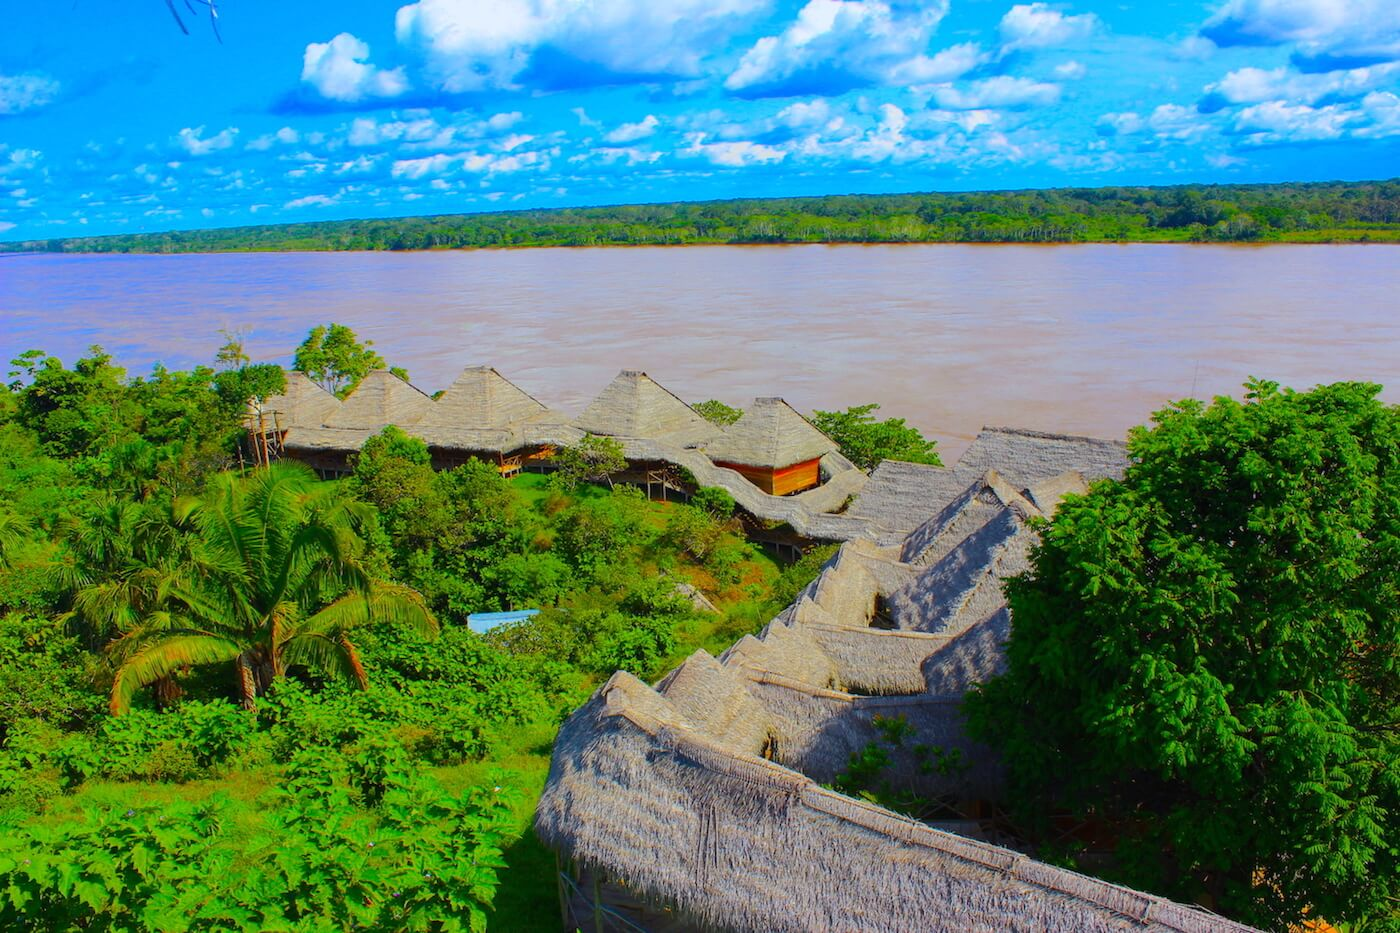 peruvian amazon ecolodge by Marañon river